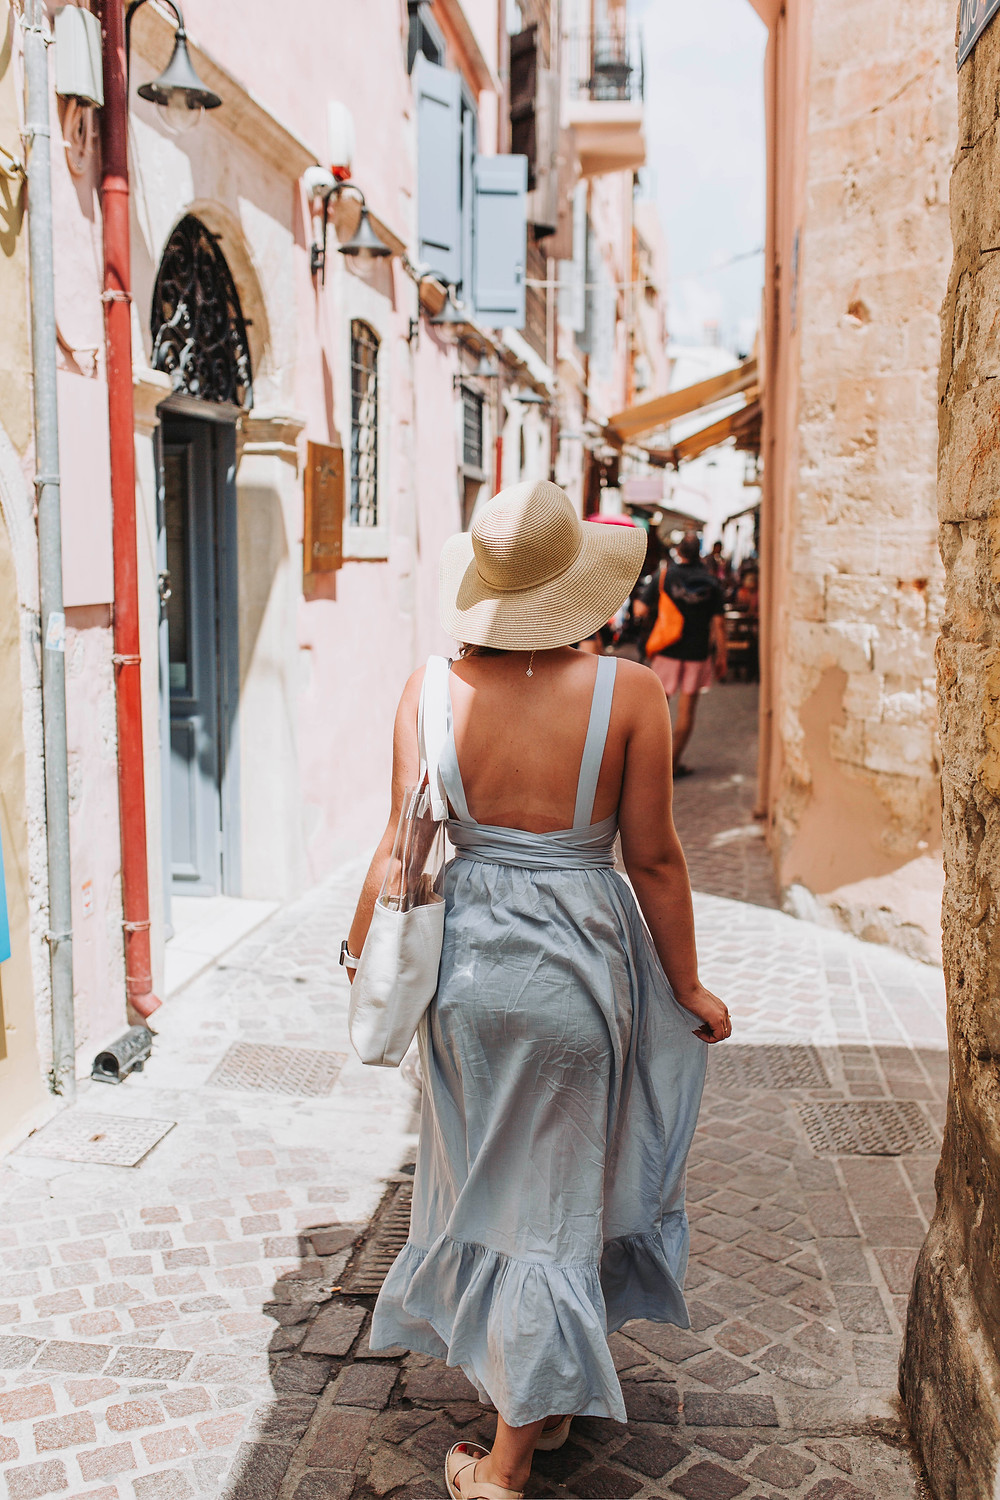 Marika walking down a side street on her travels in a blue dress and cream-colored hat